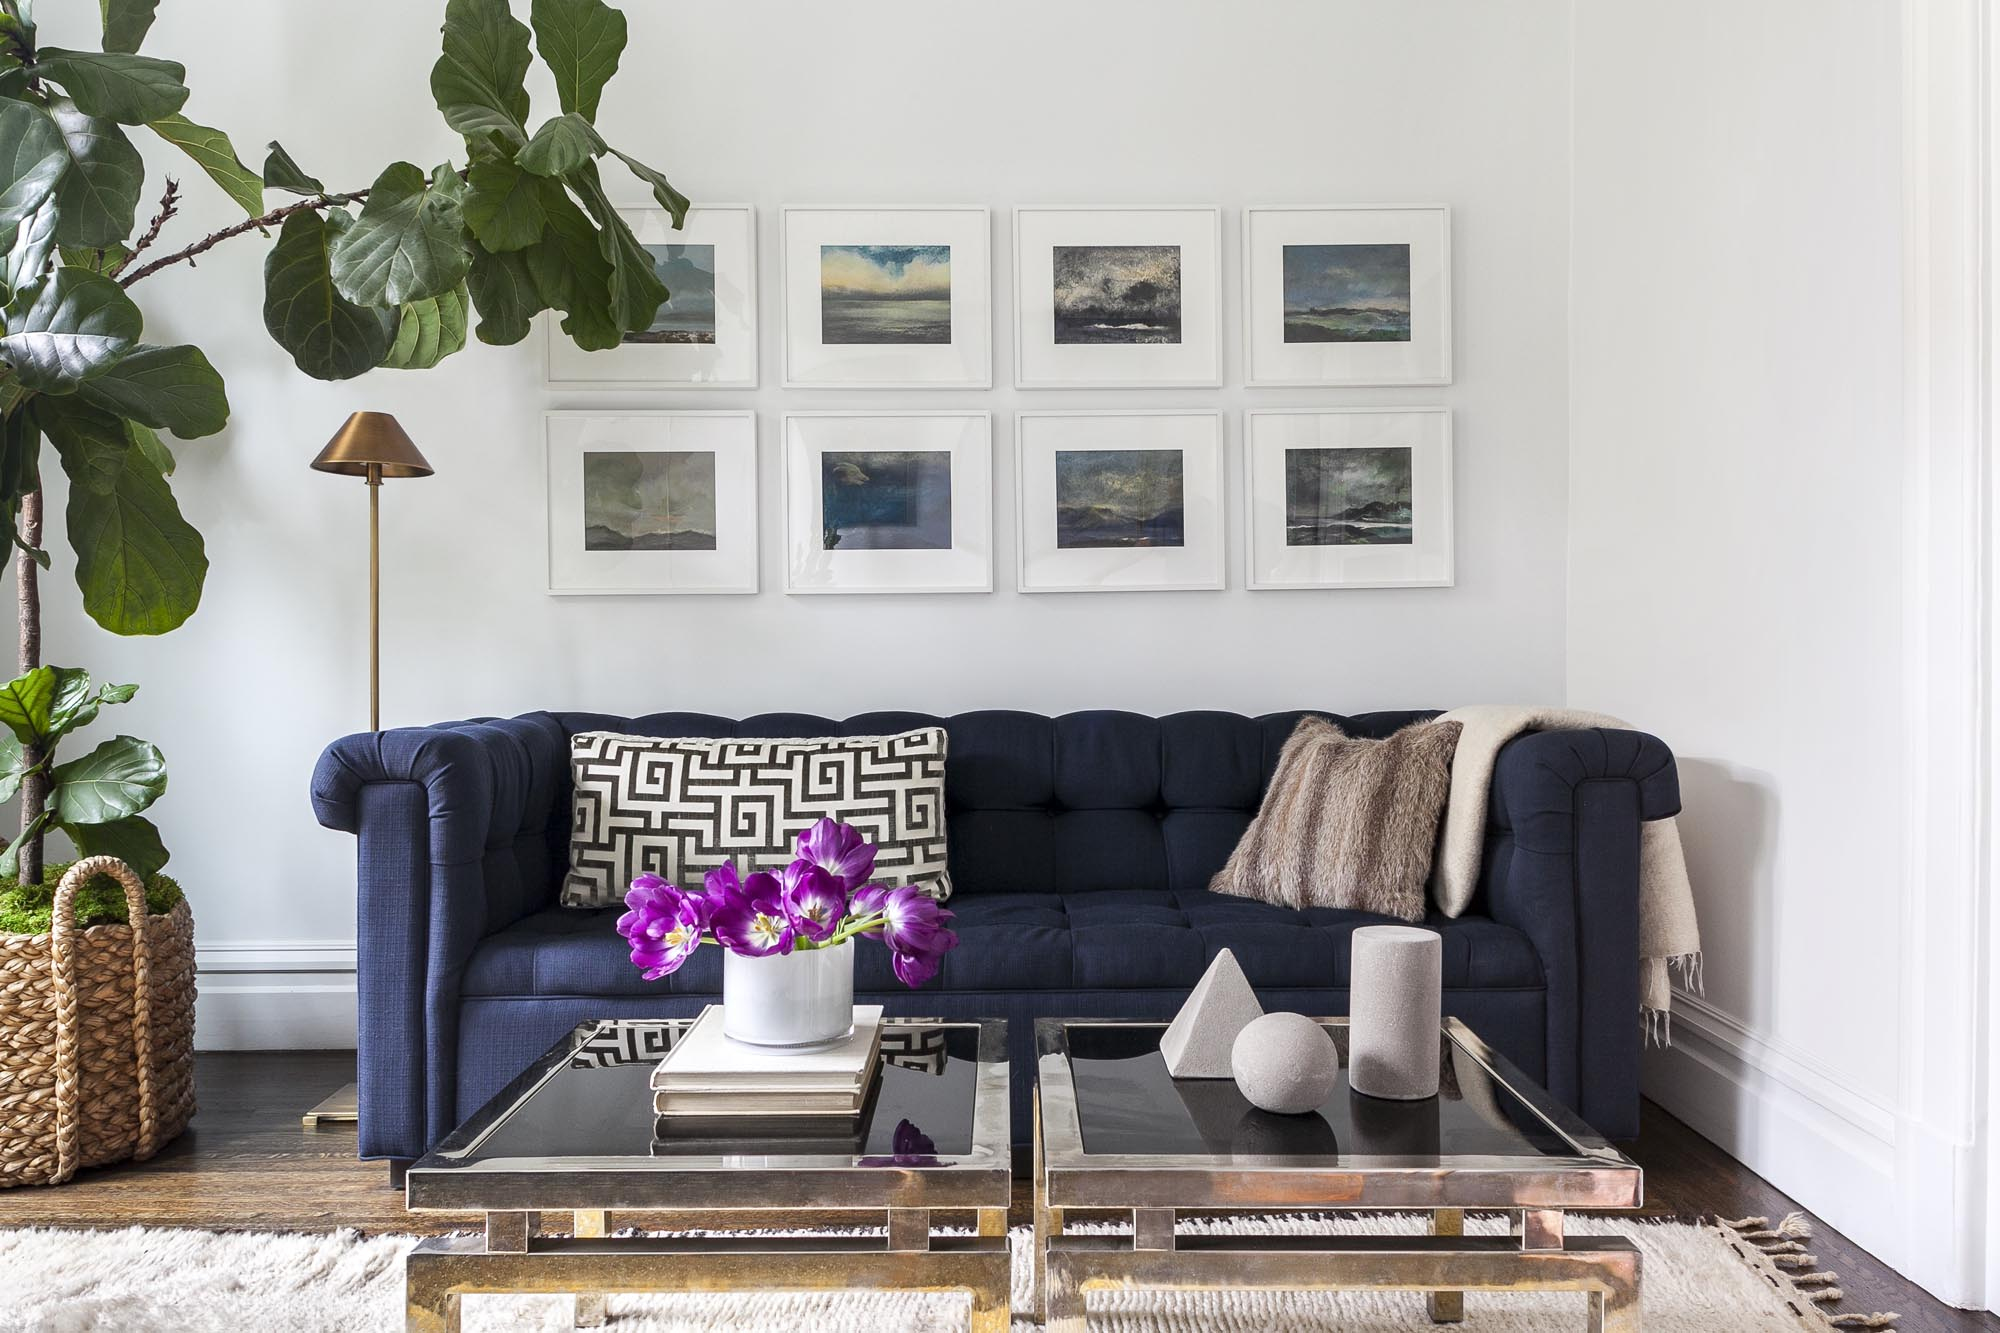 Interior designer Grant K. Gibson shares his best advice on the art of curation.